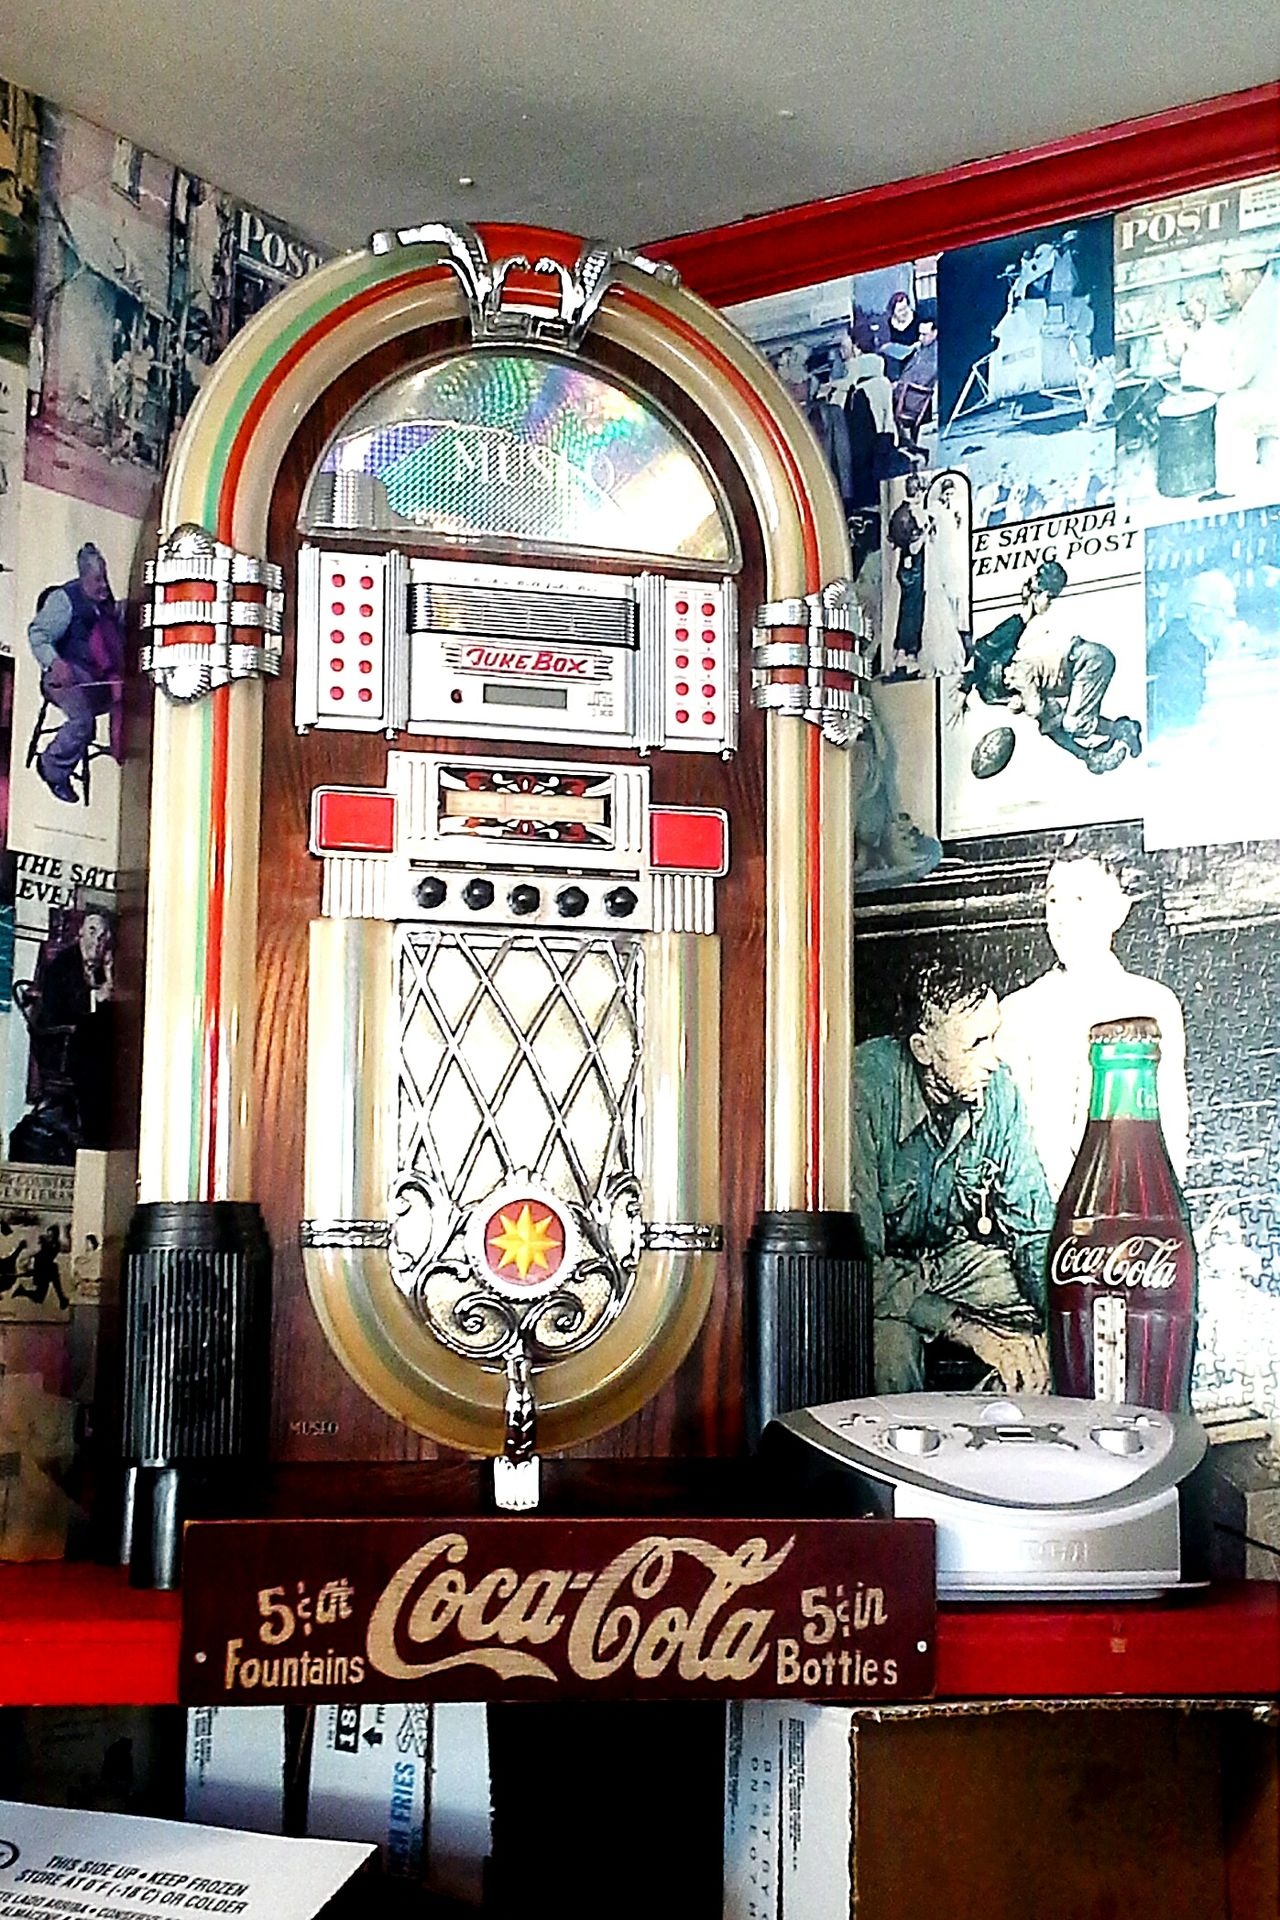 Restaurant Decor Coca-cola Jukebox Antique Antiques Burgerjoint EyeEm Antique Antiquecollection Coca-Cola ❤ Coca-Cola, Label/logo/sign